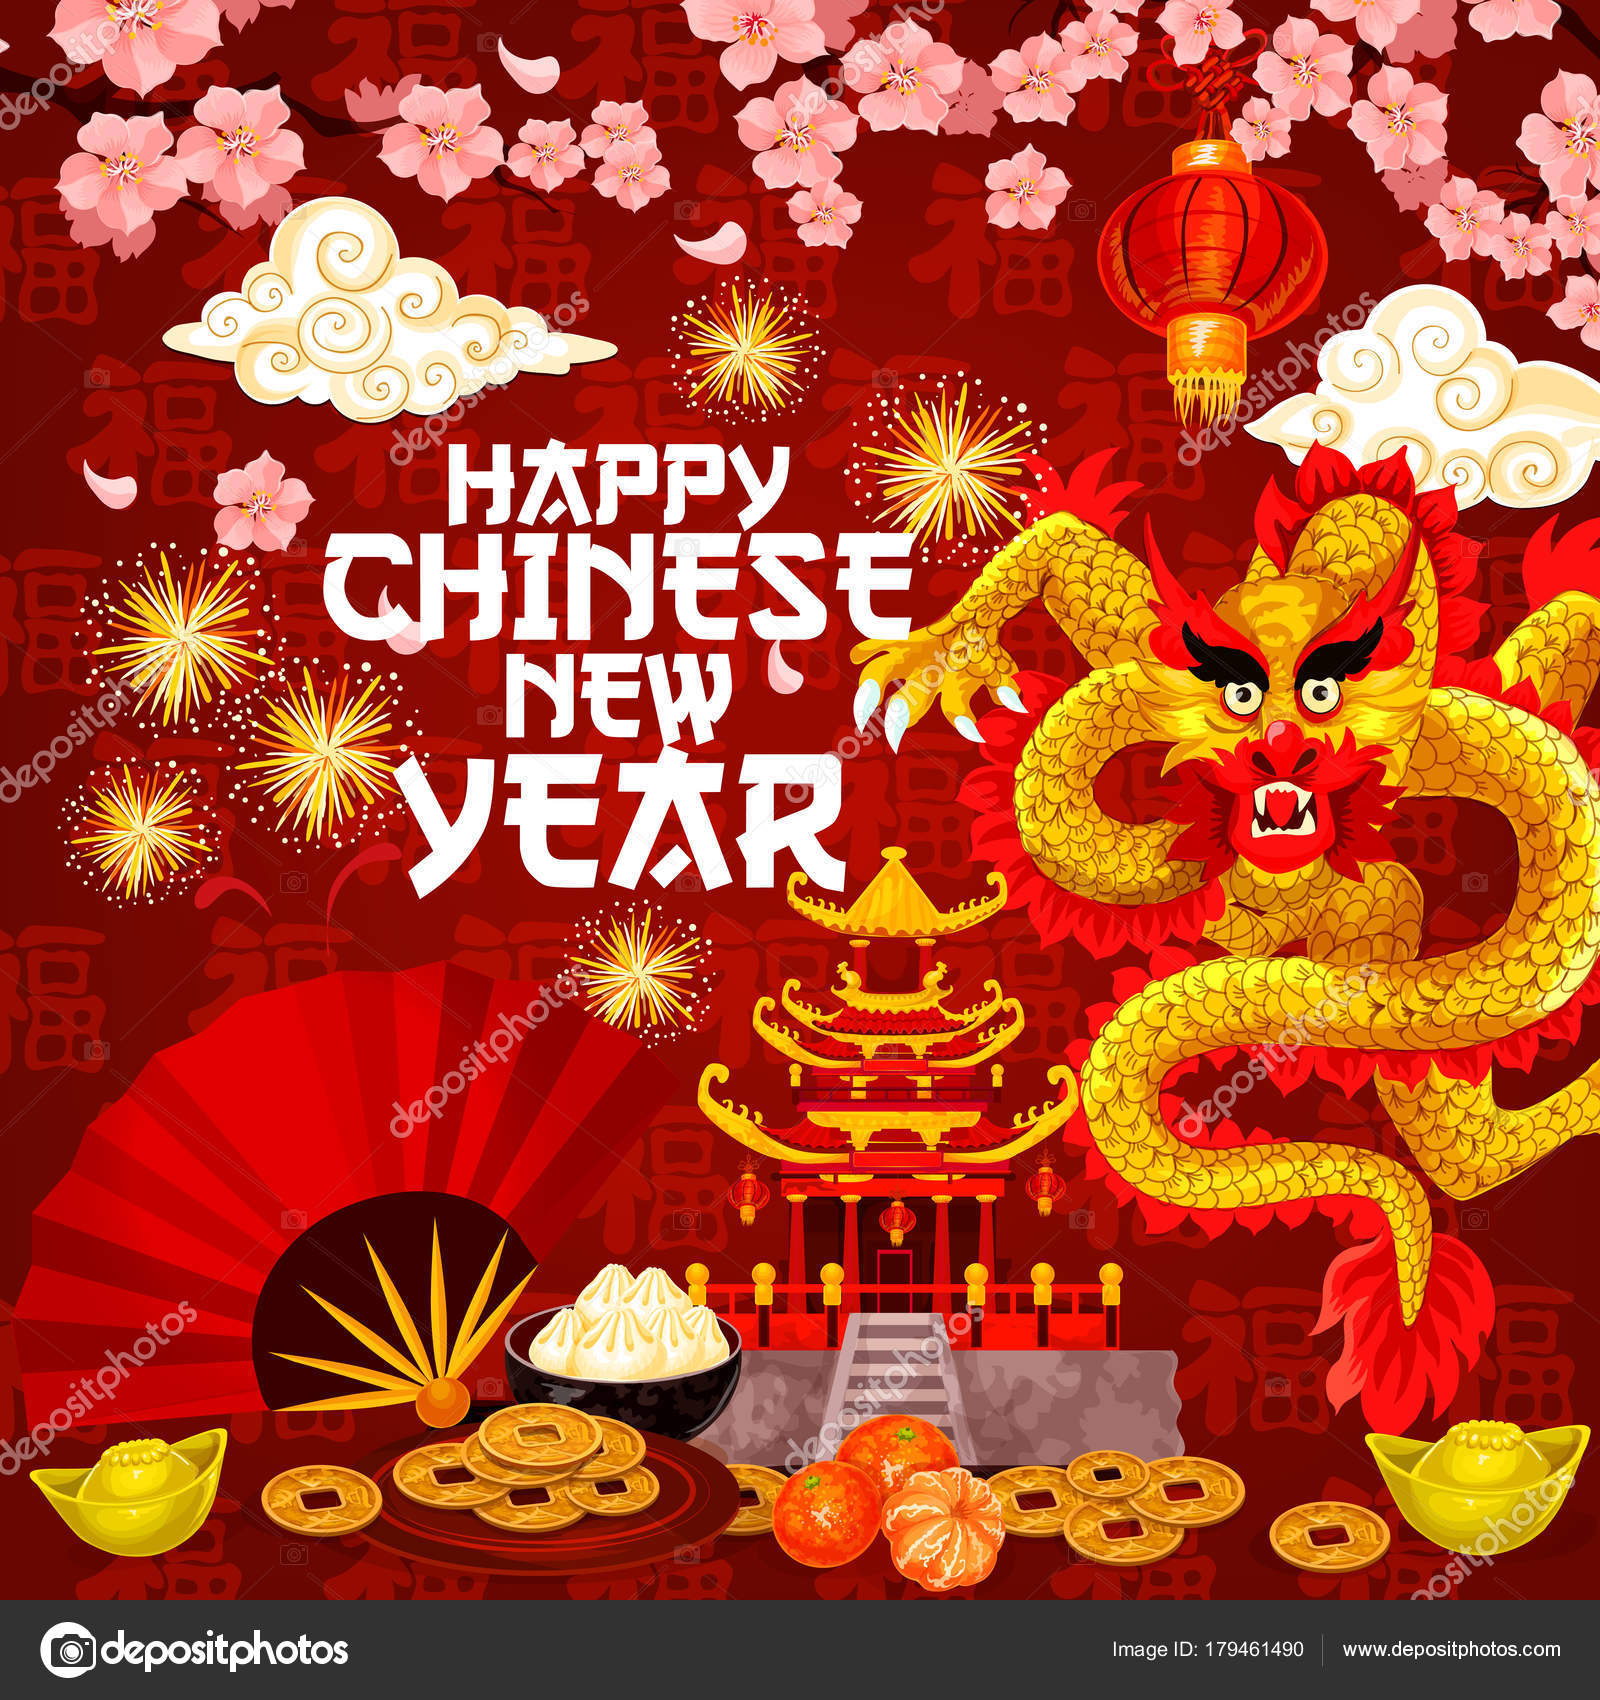 Chinese new year traditional vector greeting card stock vector chinese new year or lunar spring holiday greeting card of cherry blossom flowers and golden dragon in fireworks vector red lanterns gold coins and chinese m4hsunfo